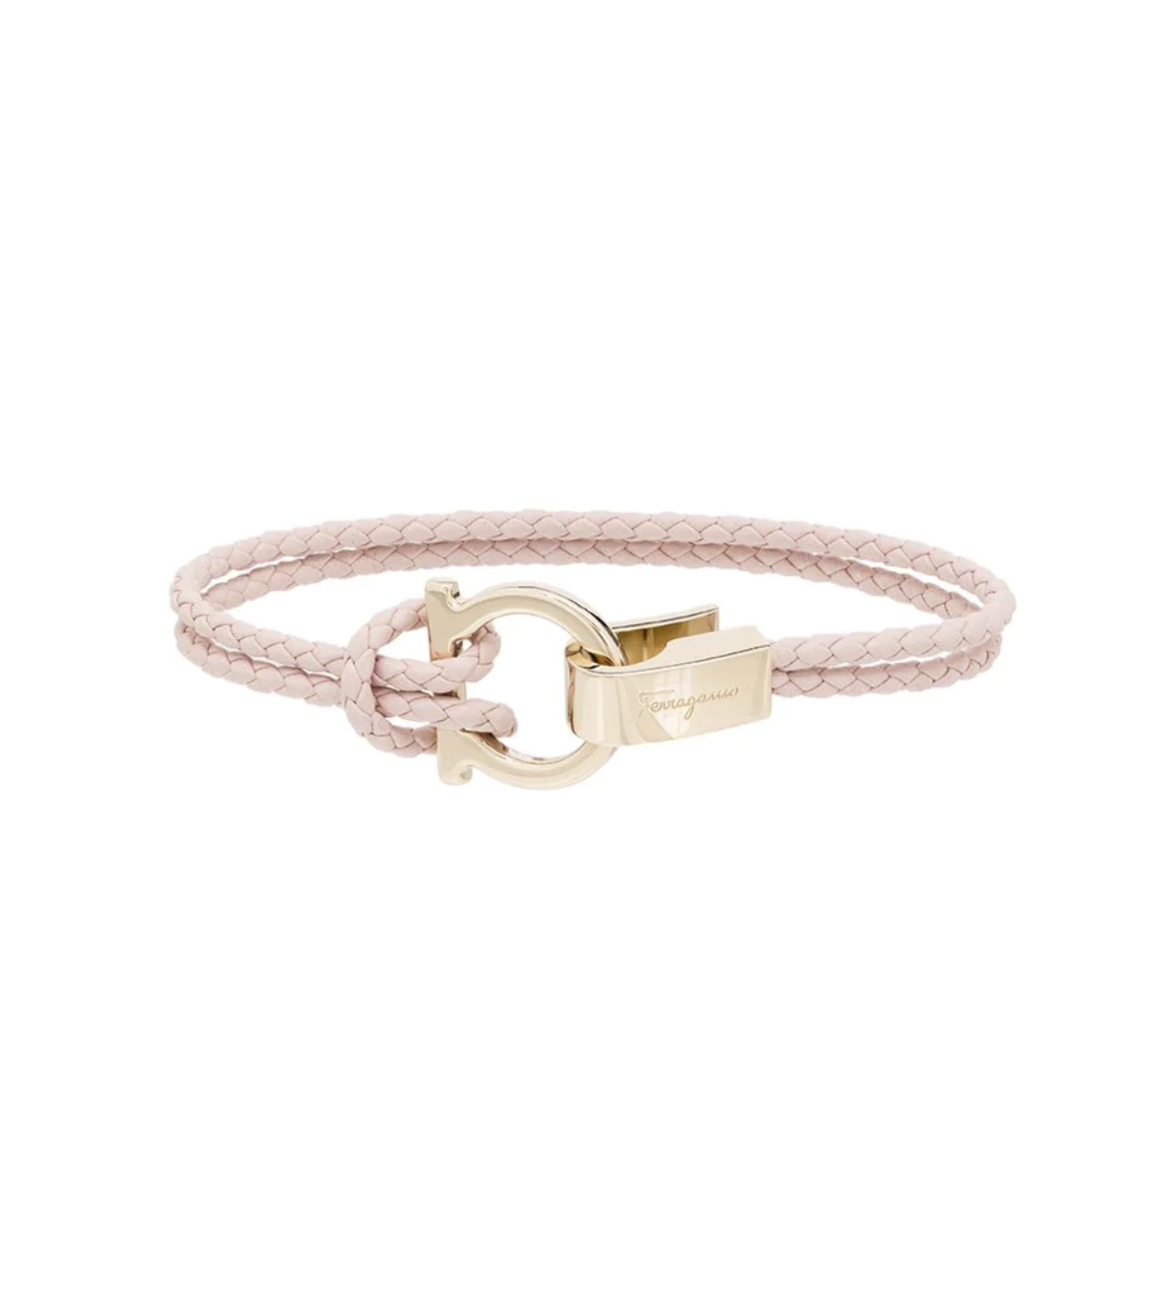 Gancini-plaque braided bracelet HK$1,512 from farfetch